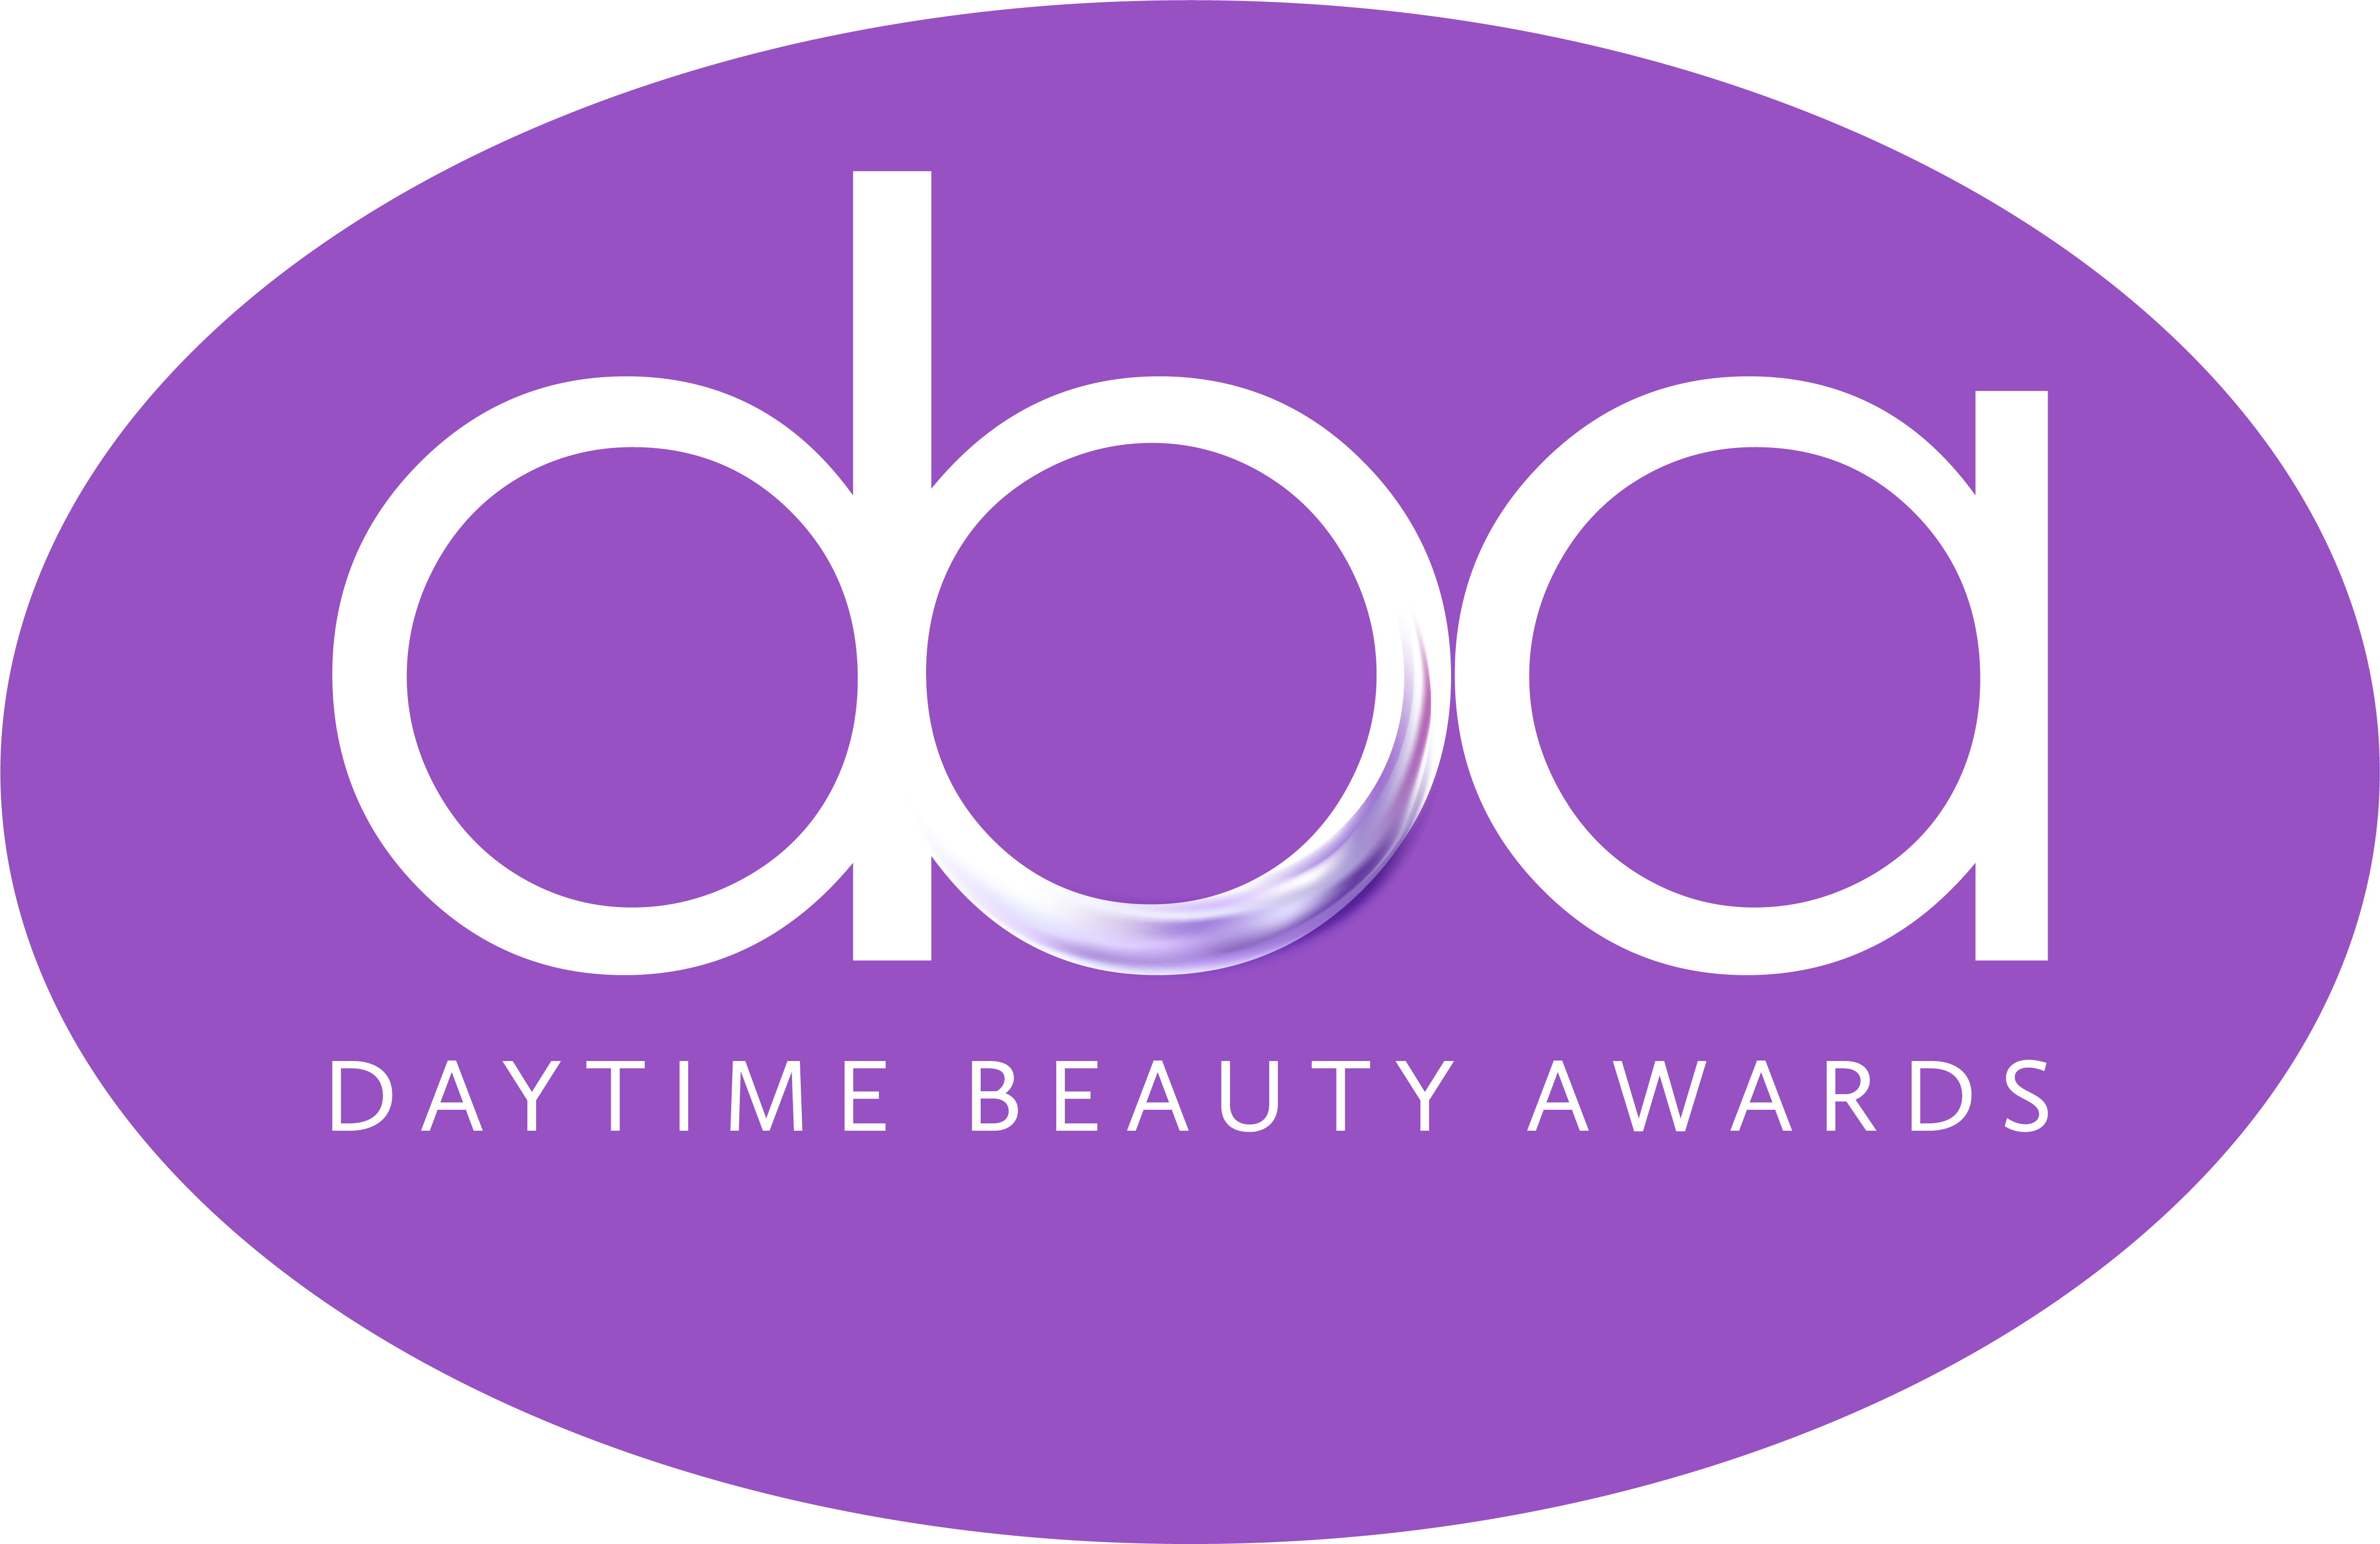 Daytime Beauty Awards logo